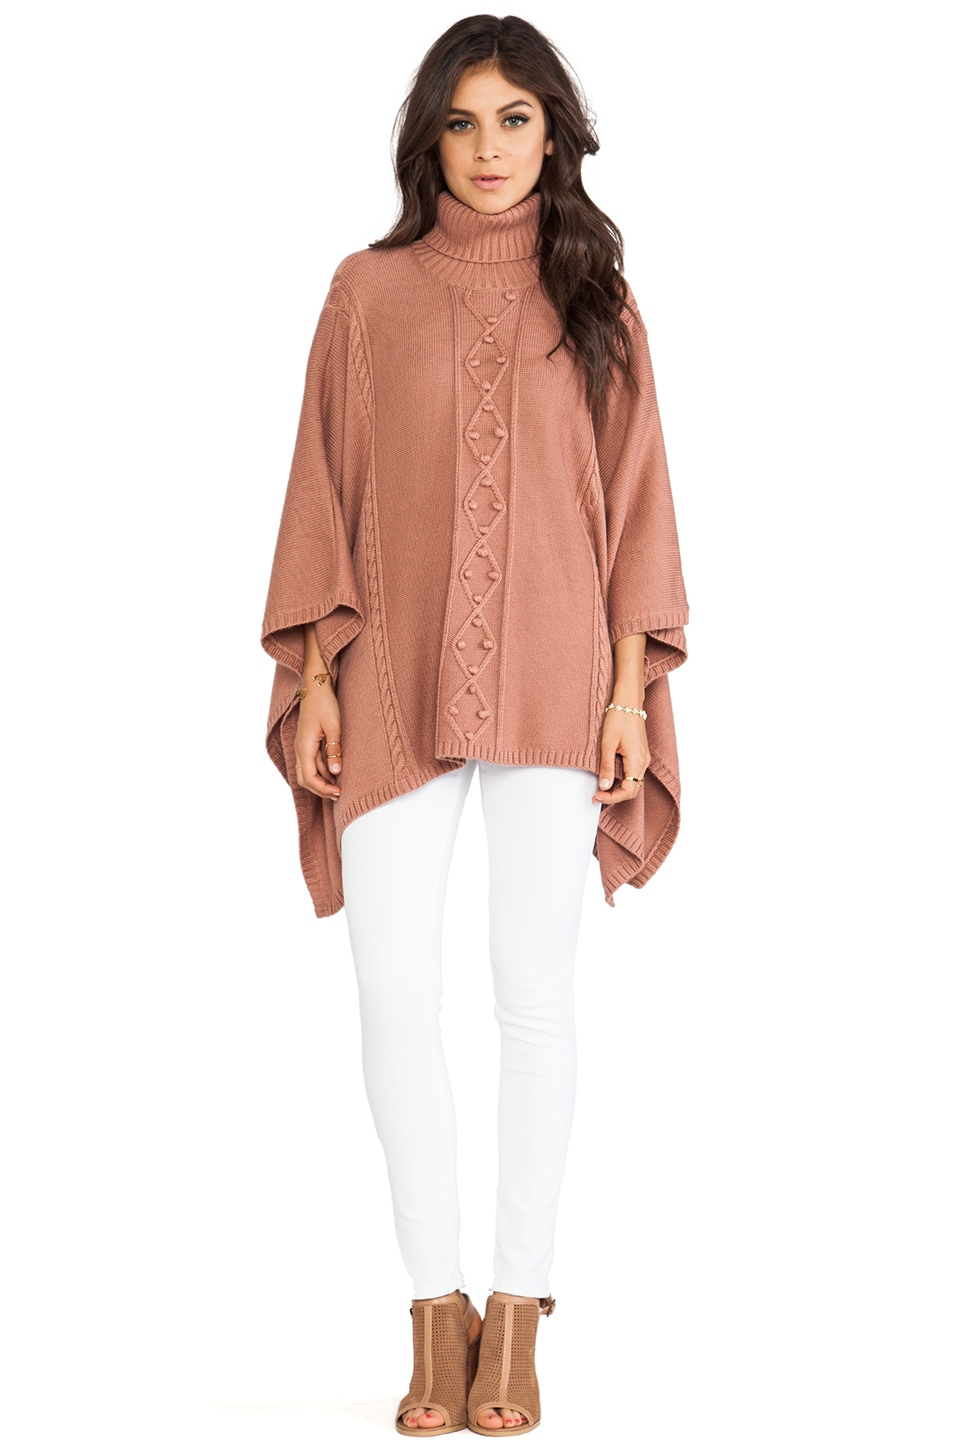 Alice by Temperley Octavia Knit Cape in Dusty Pink